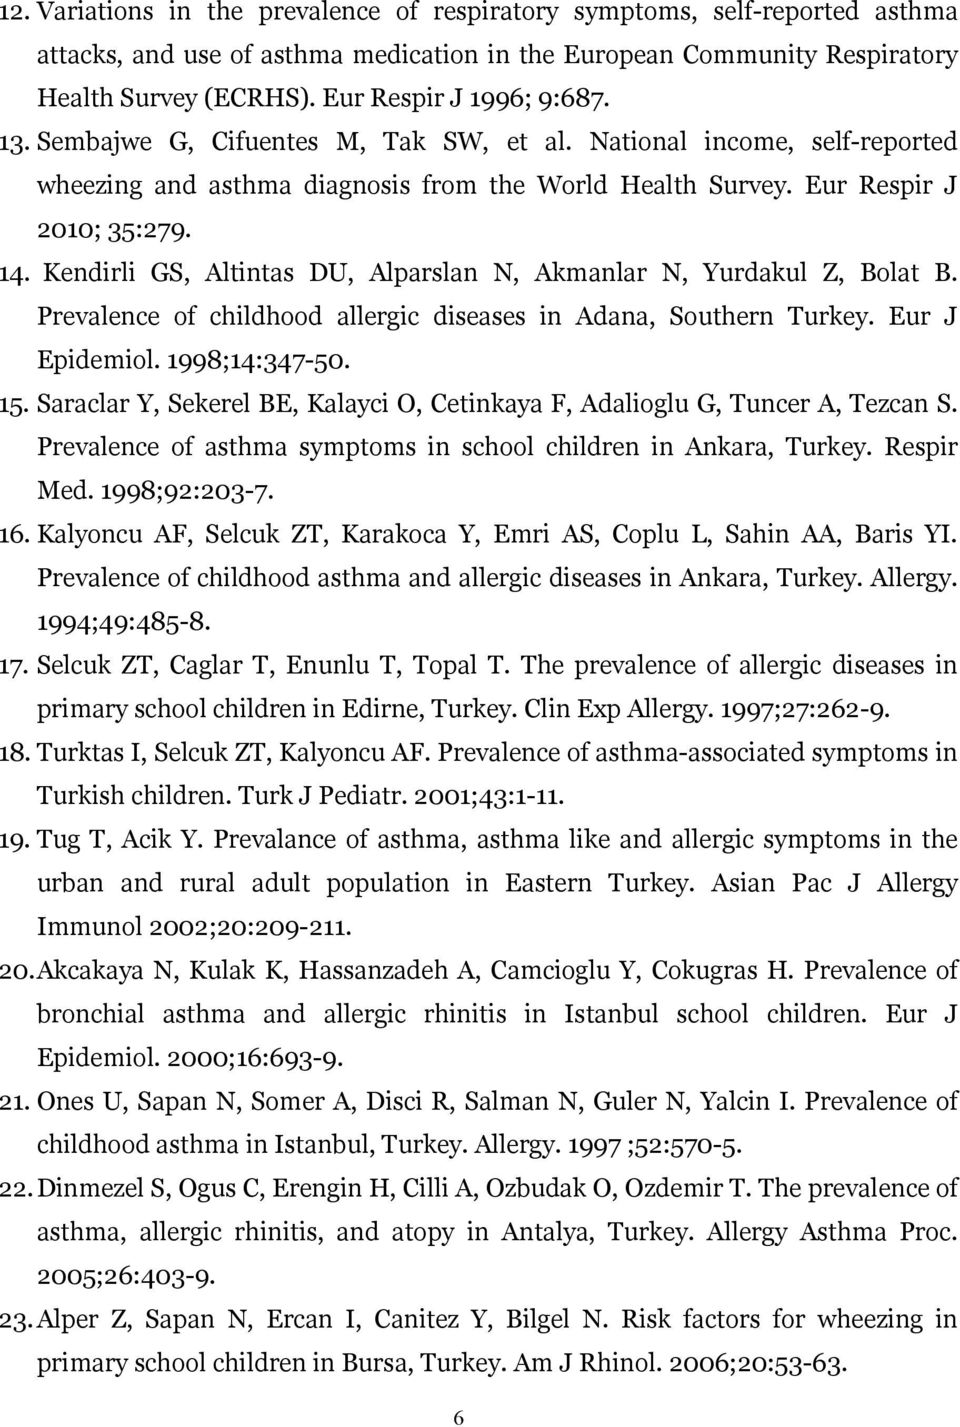 Kendirli GS, Altintas DU, Alparslan N, Akmanlar N, Yurdakul Z, Bolat B. Prevalence of childhood allergic diseases in Adana, Southern Turkey. Eur J Epidemiol. 1998;14:347-50. 15.